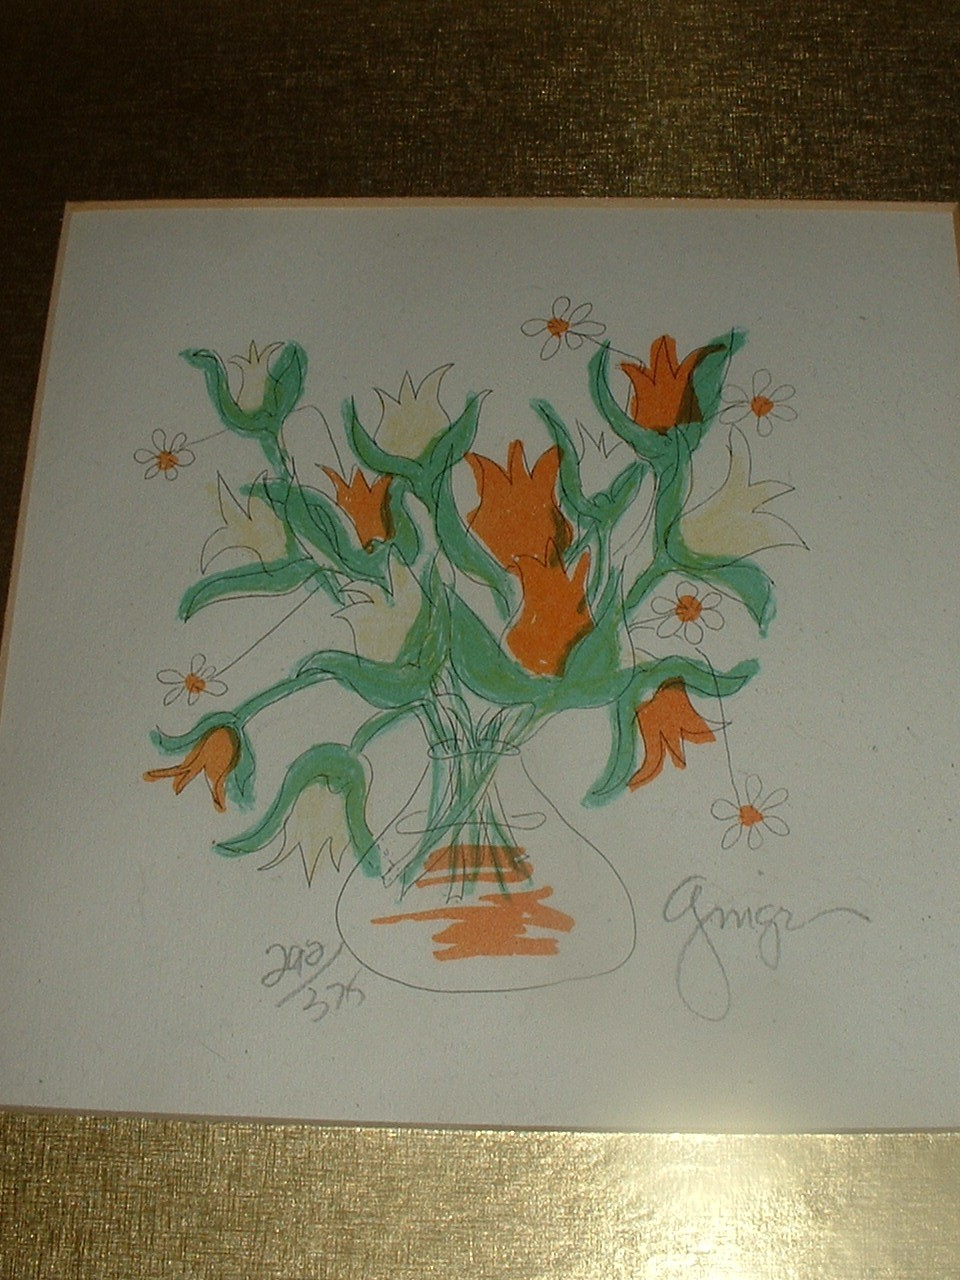 Vintage Limited Edition Signed Numbered Print